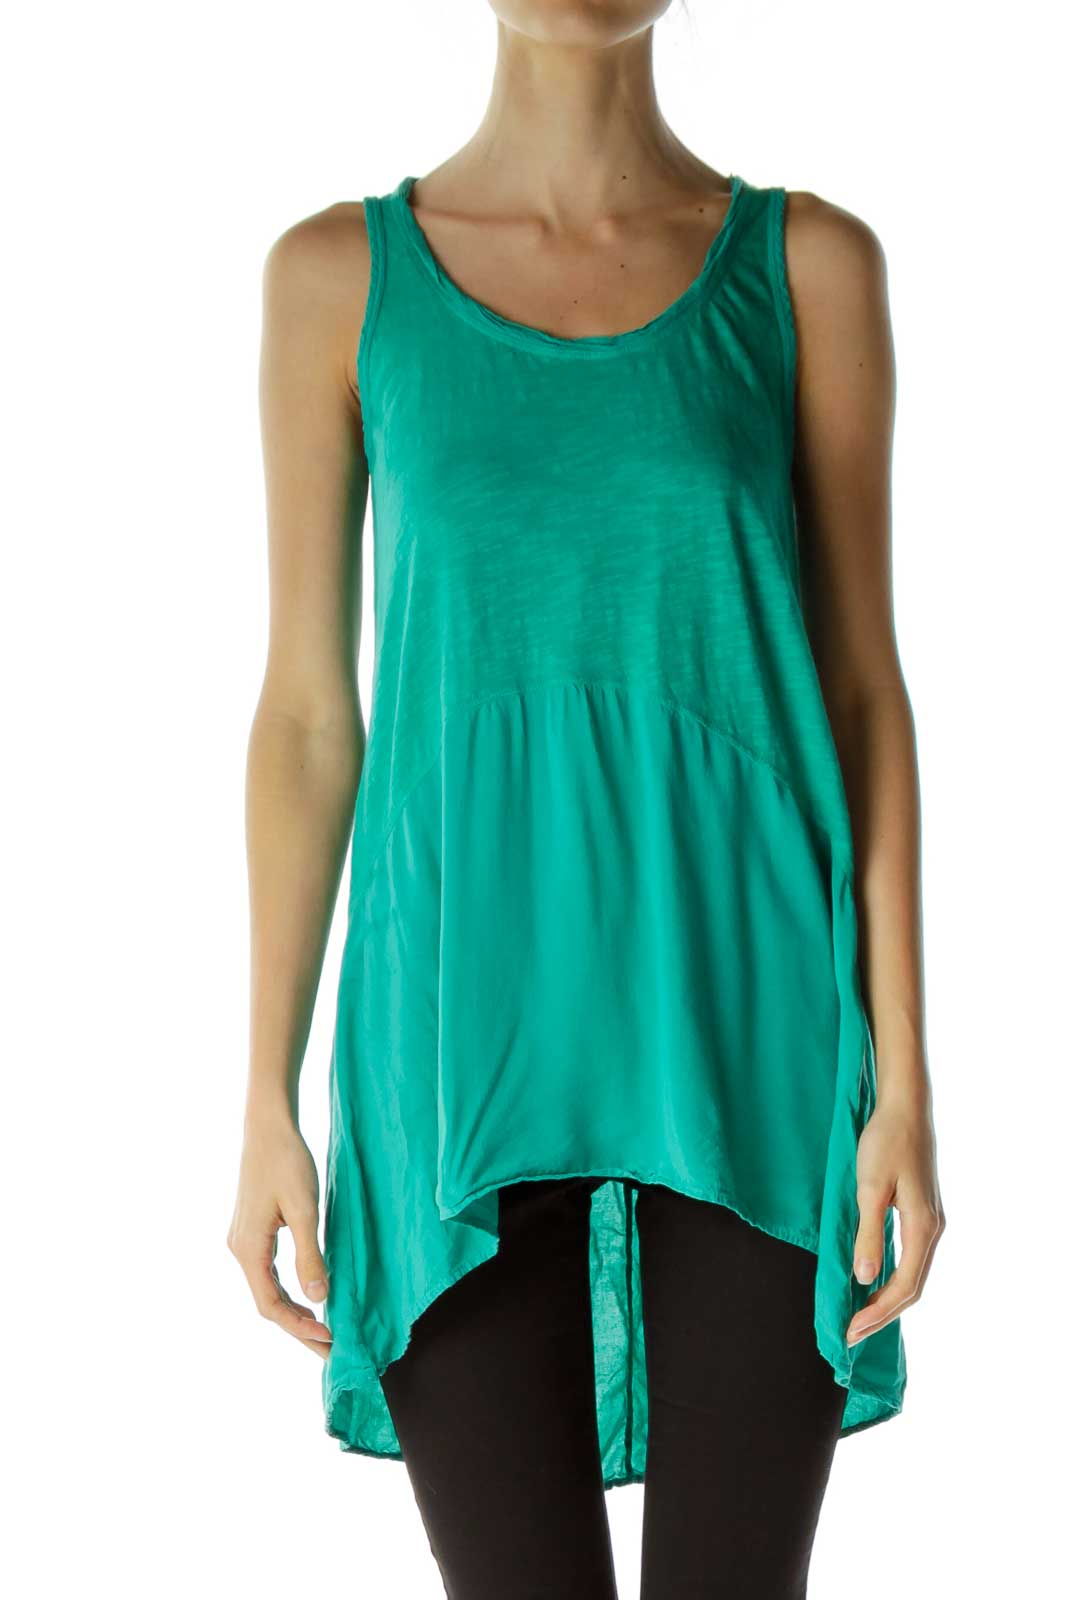 Green Sleeveless Top Front